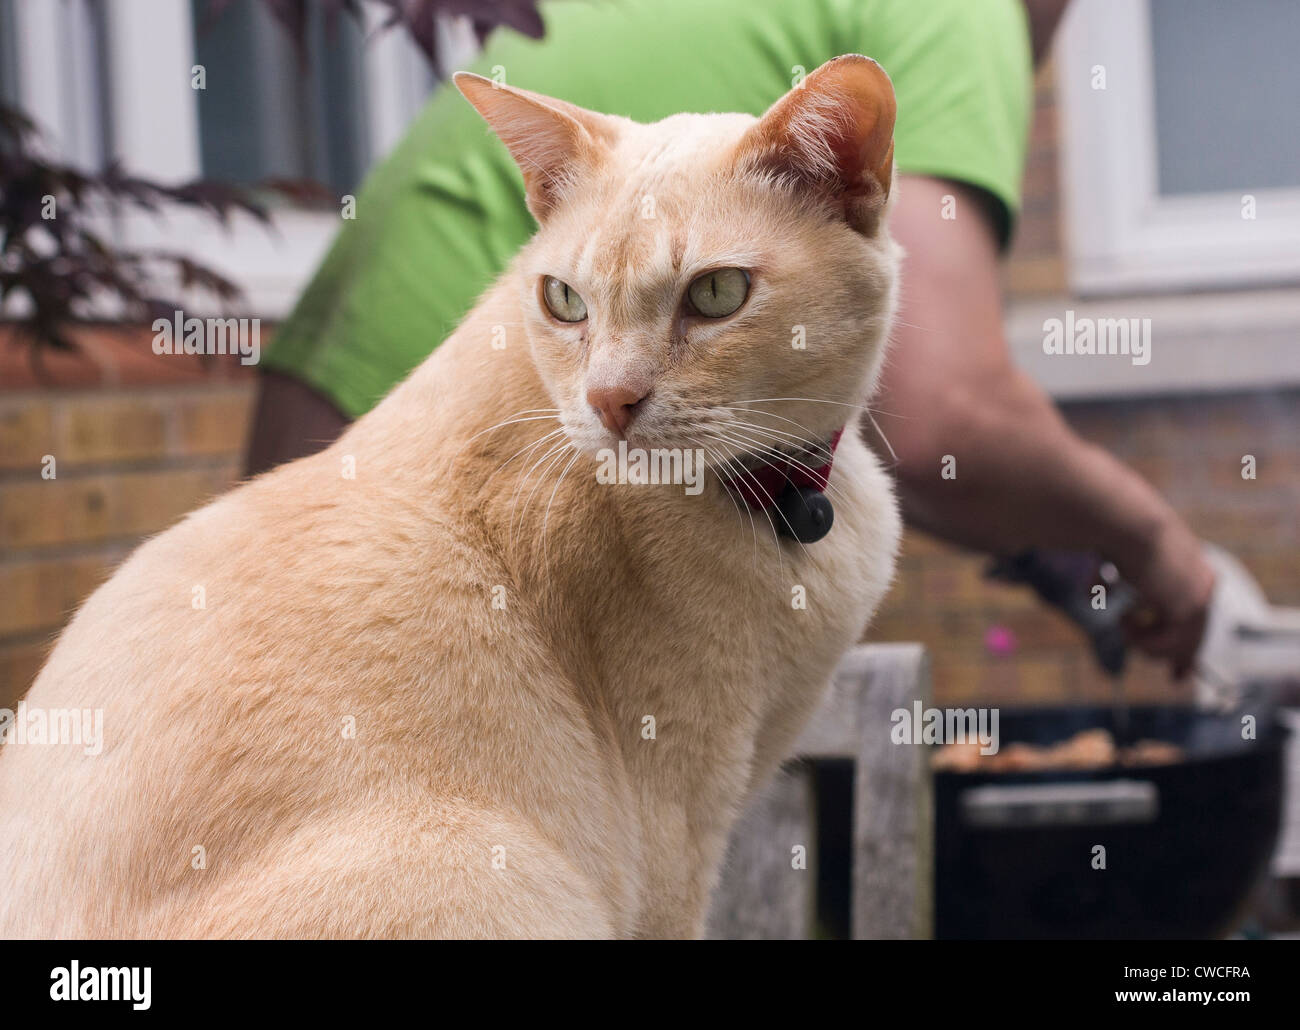 Burmese cat waits hopefully for a taste of the barbecue which is being tended in the background Stock Photo